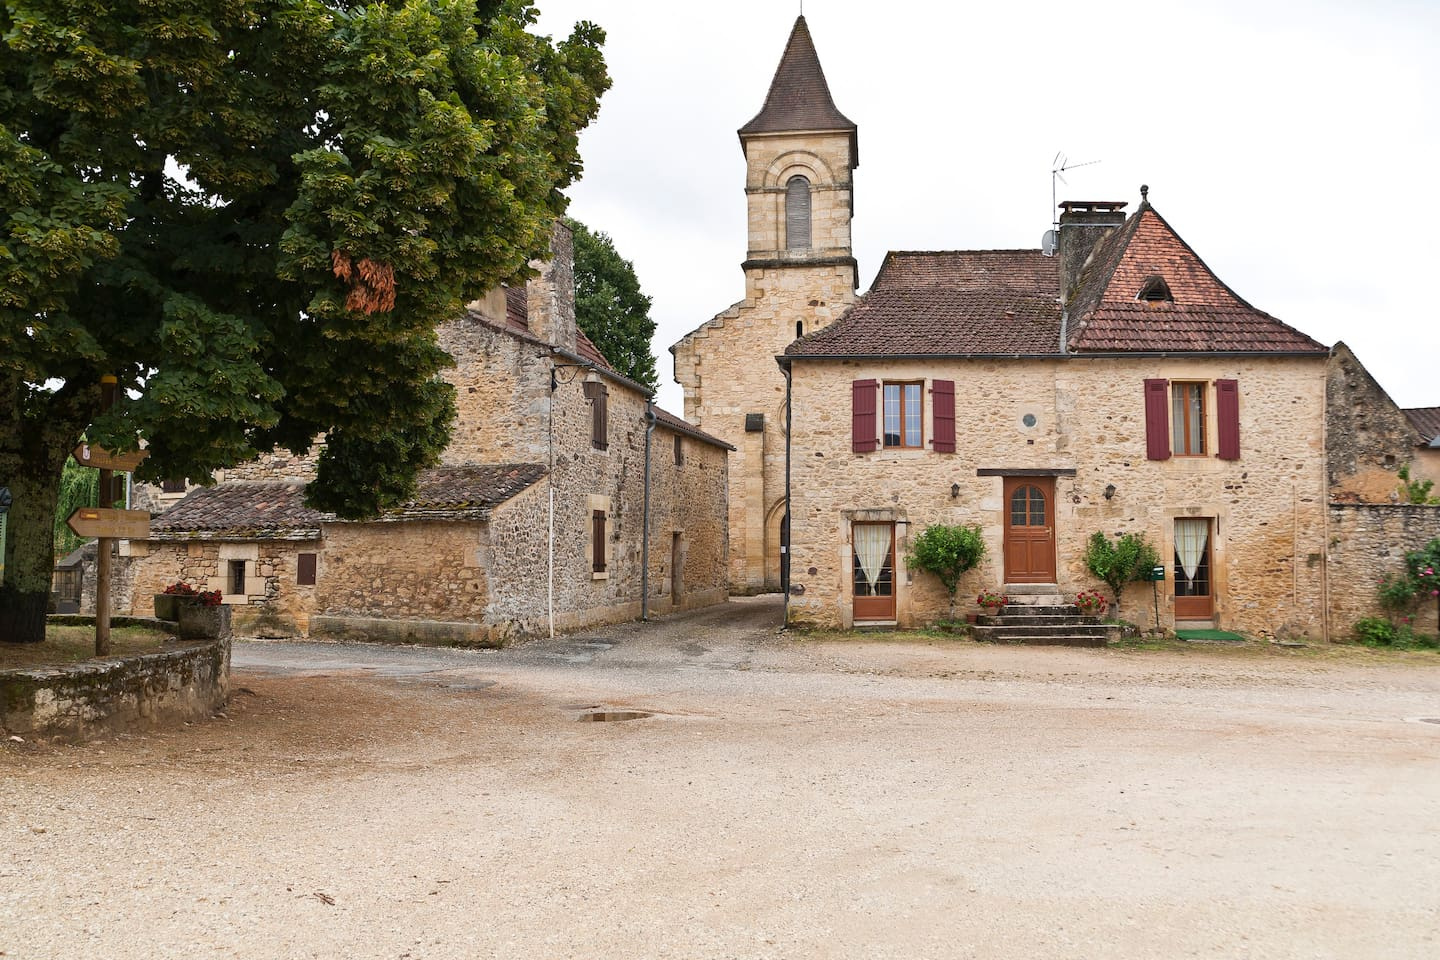 Stone House in Historic Dordogne